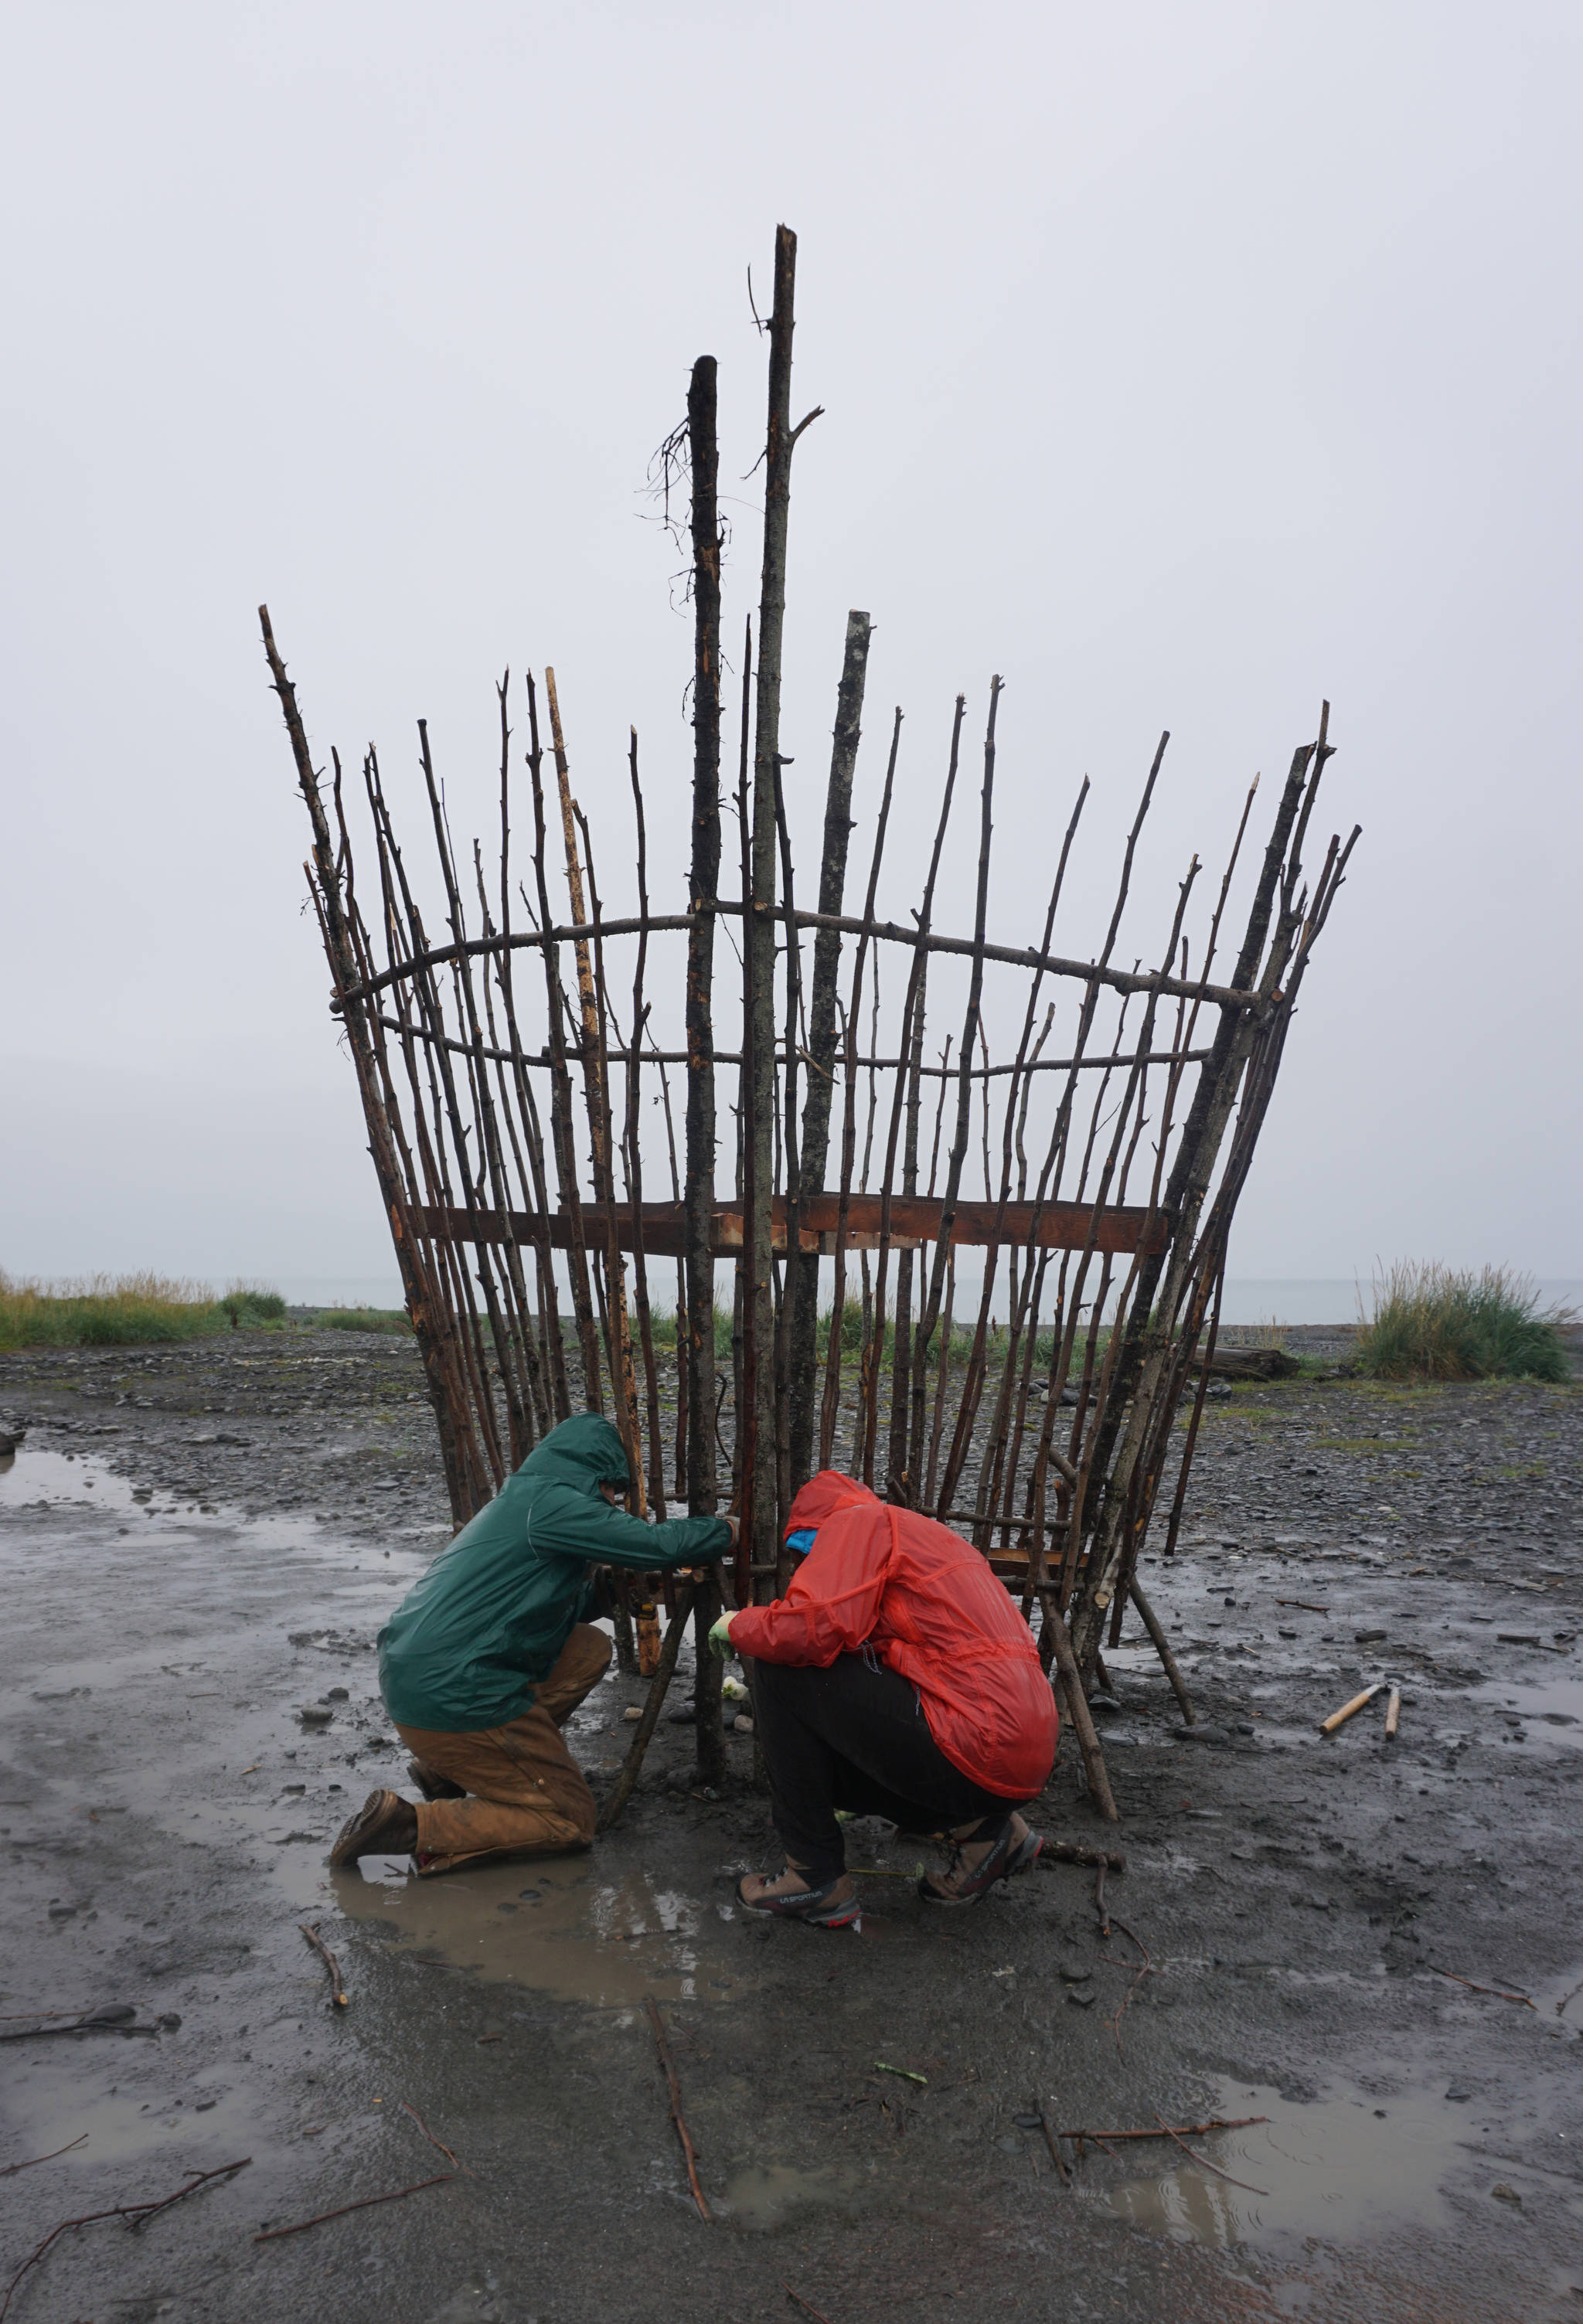 Robin Austin, left, and Natalia Mulawa, right, work on Shine, this year's Burning Basket, Tuesday, Sept. 5, 2017 at Mariner Park on the Homer Spit, Alaska. The annual interactive art project will be offered to the community on Sunday and then transformed into heat and light at sunset. (Photo by Michael Armstrong, Homer News)